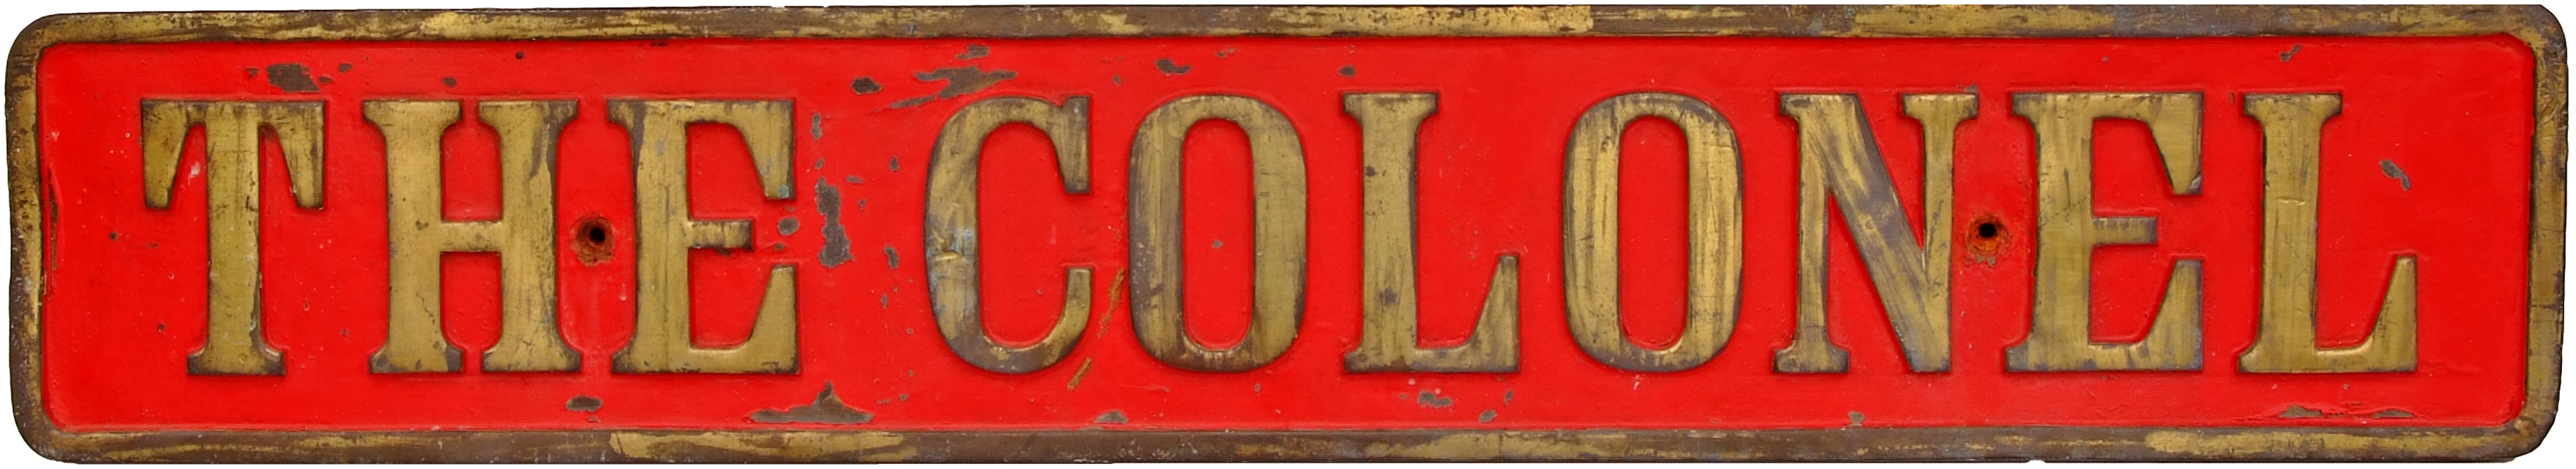 Industrial Nameplate THE COLONEL. Ex Hudswell